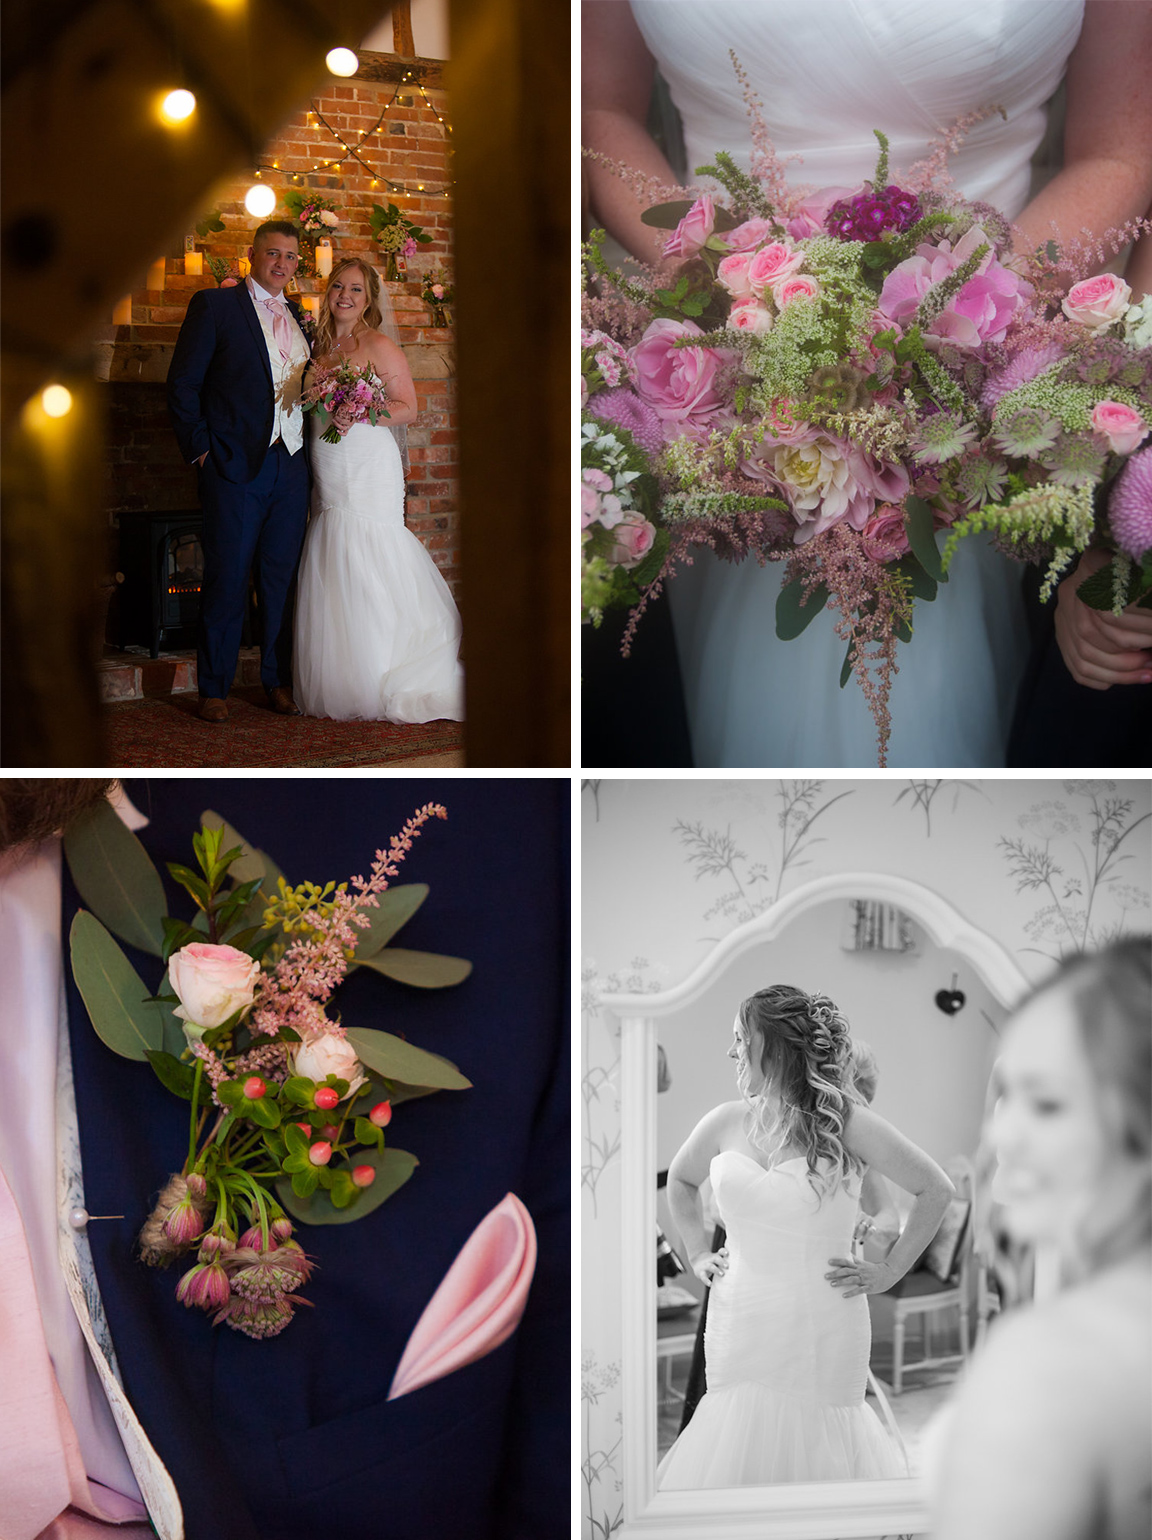 Brides trumpet-style wedding dress and pink bouquet